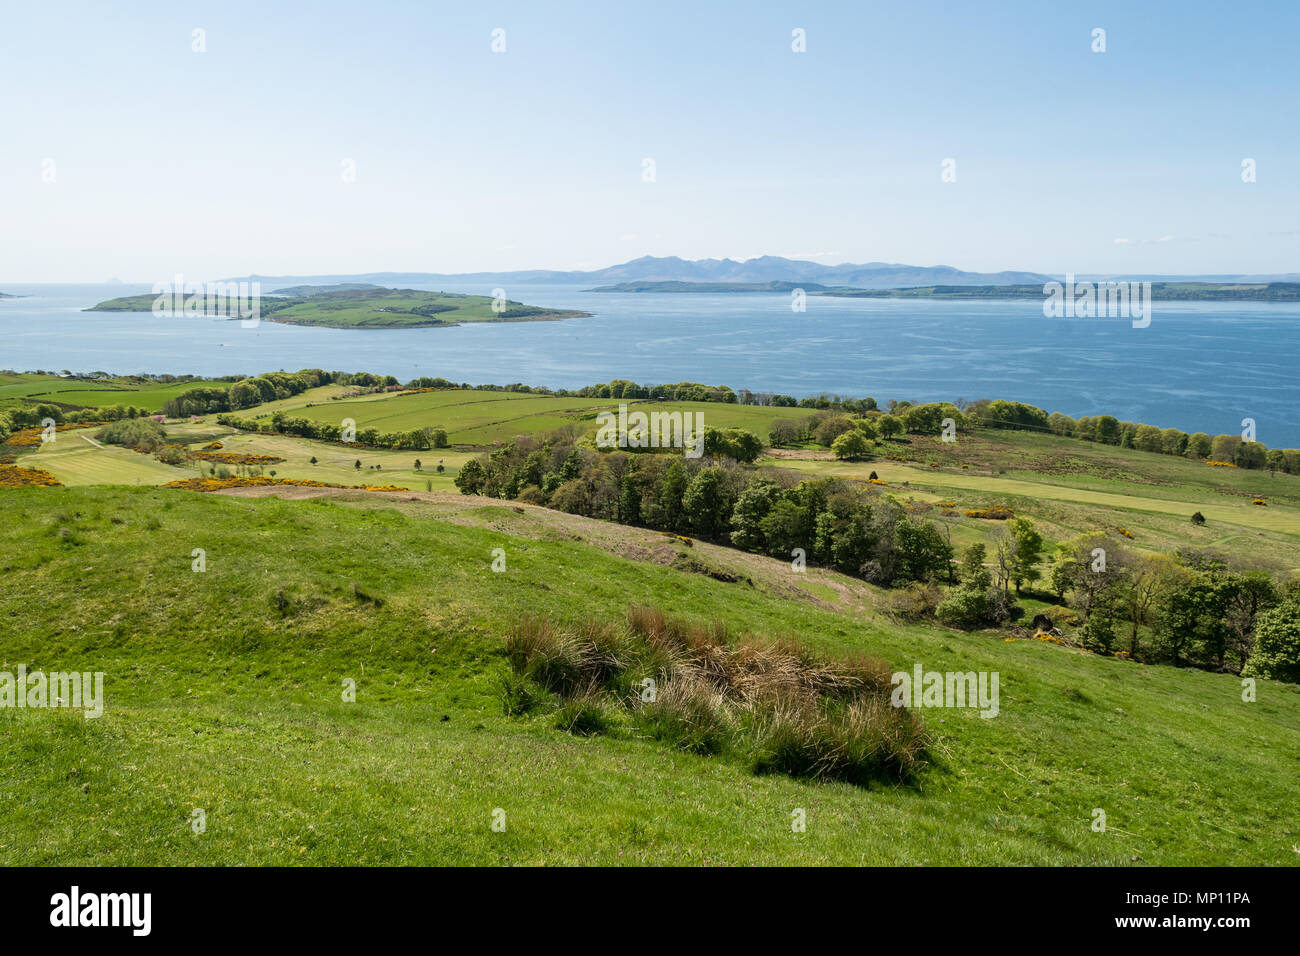 Routenburn Golf Club Largs with fantastic views over the Firth of Clyde, North Ayrshire, Scotland, UK - Stock Image